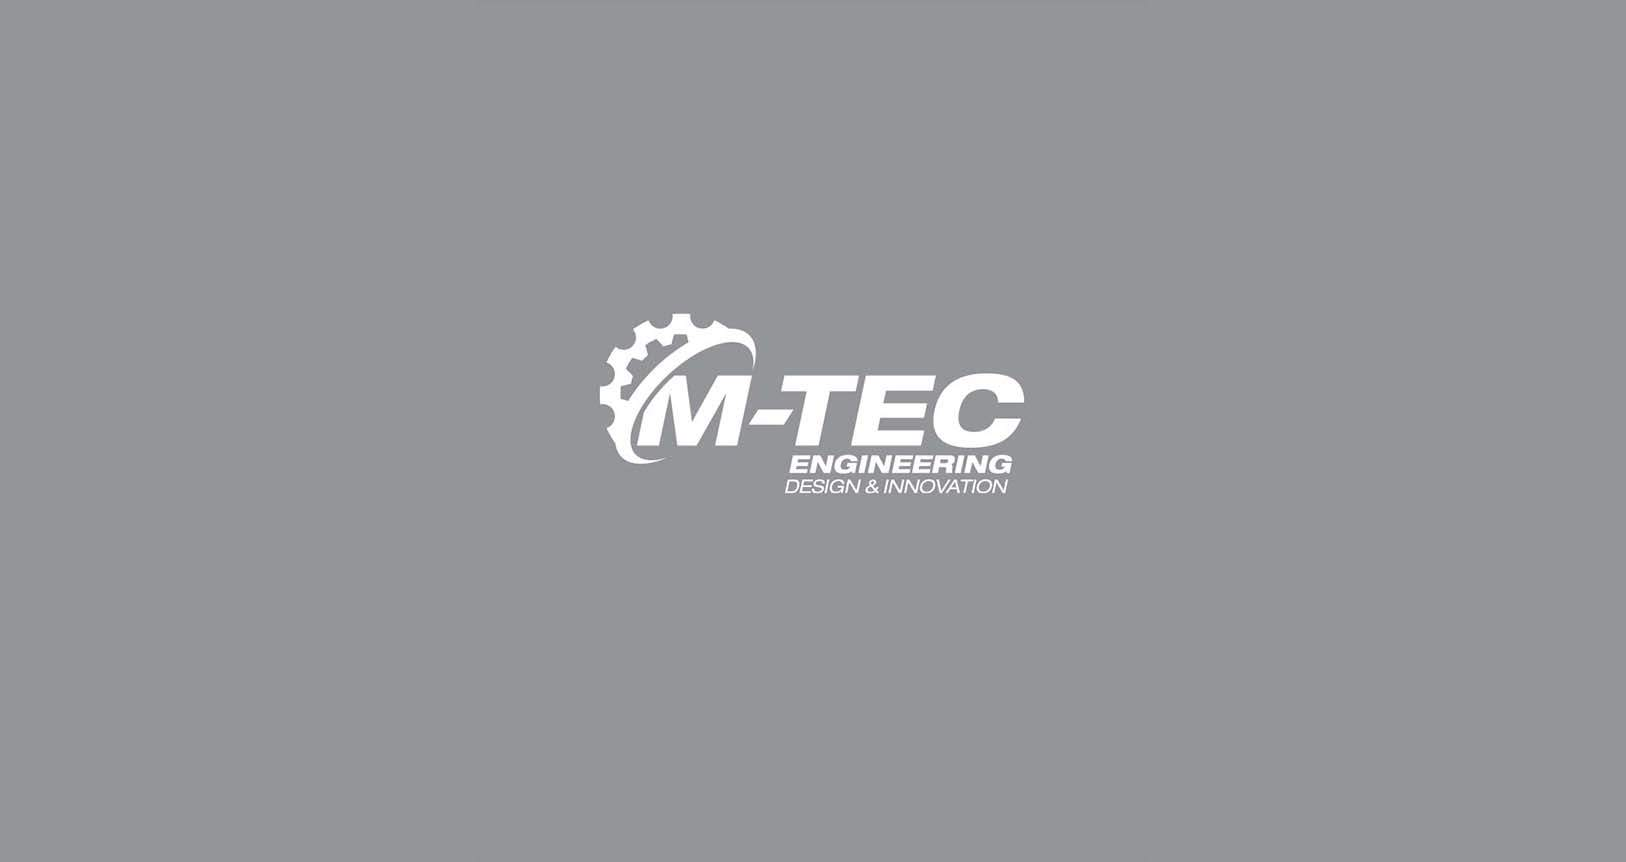 M-TEC-ENGINEERING-TOP-WIDE-BANNER